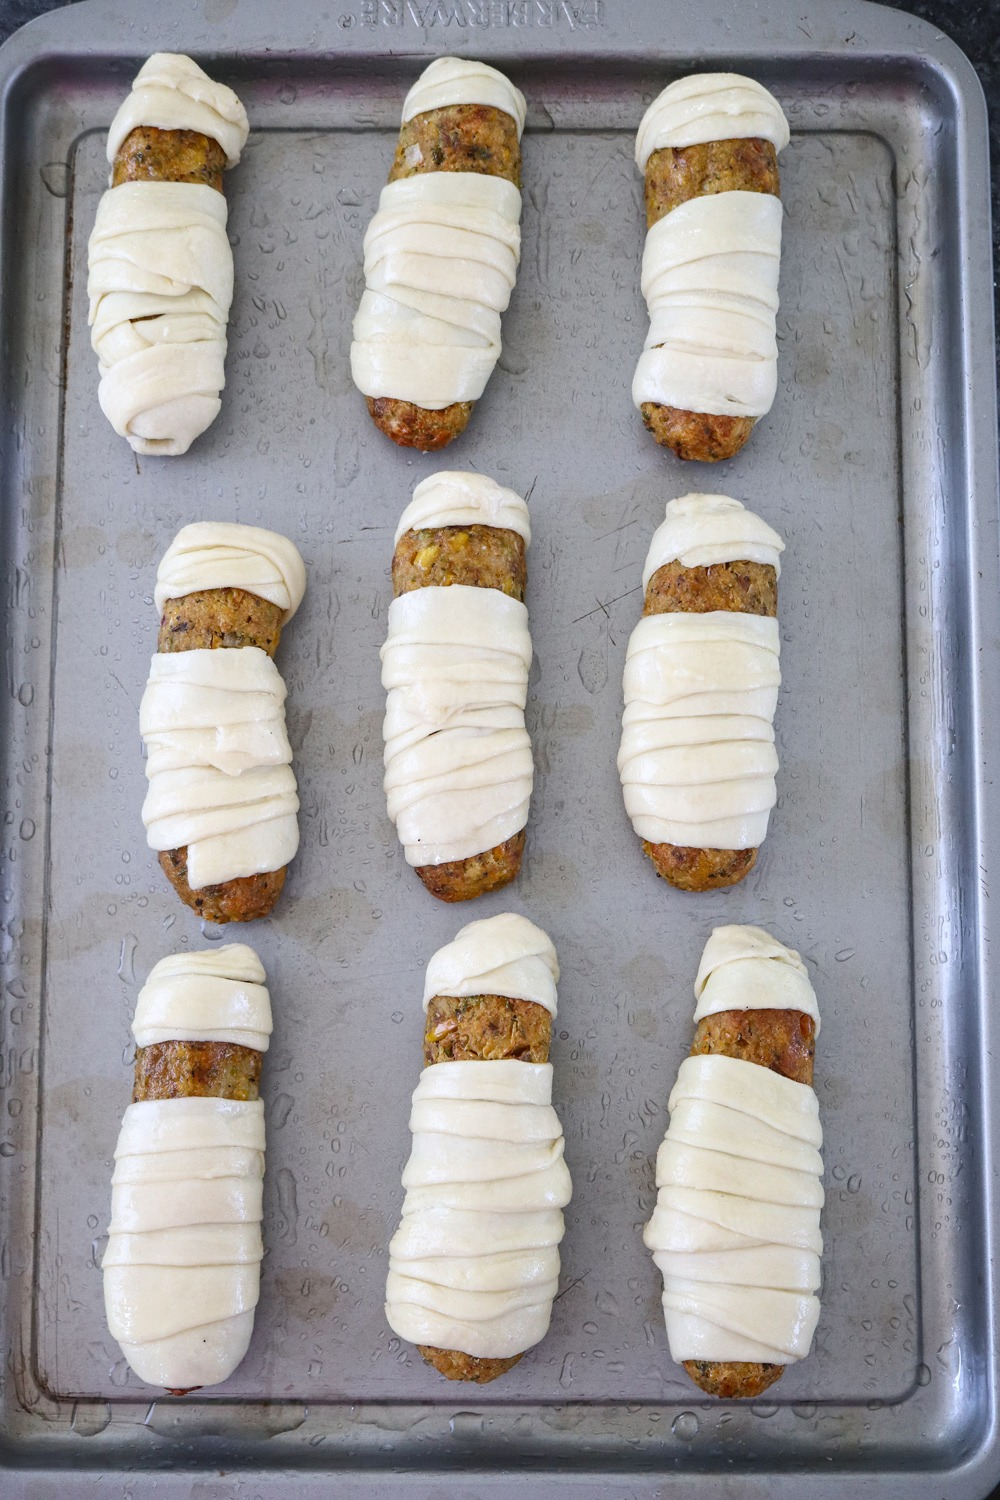 Croquettes ready for baking on a tray